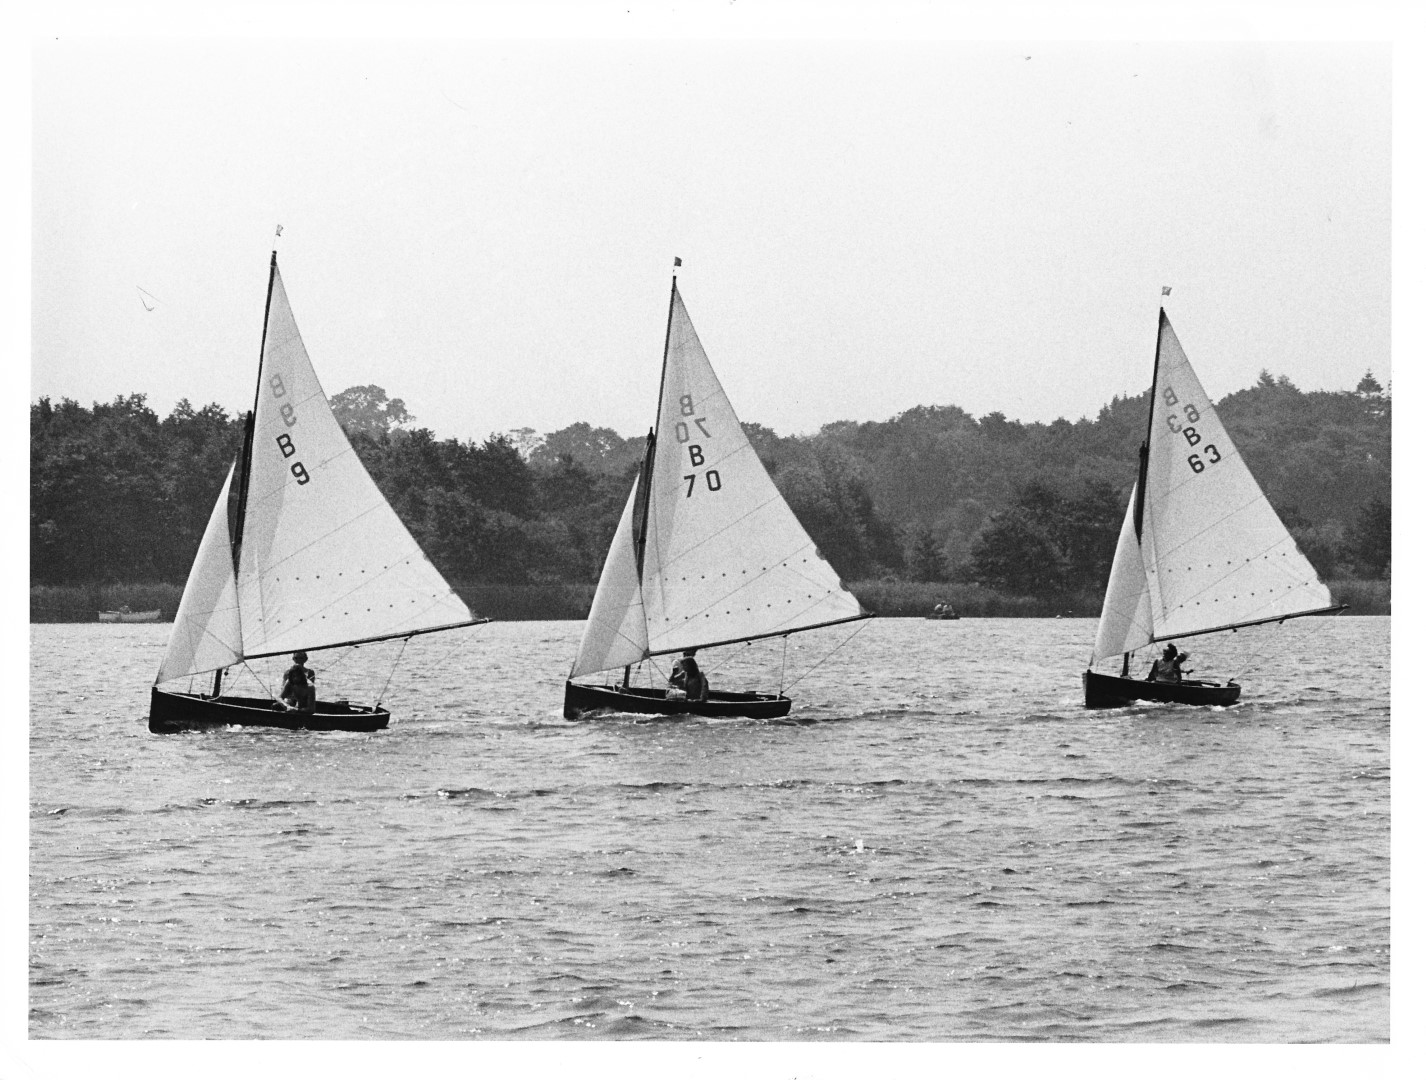 Norfolk Dinghy Weekend 30 Jun - 1 Jul 1973